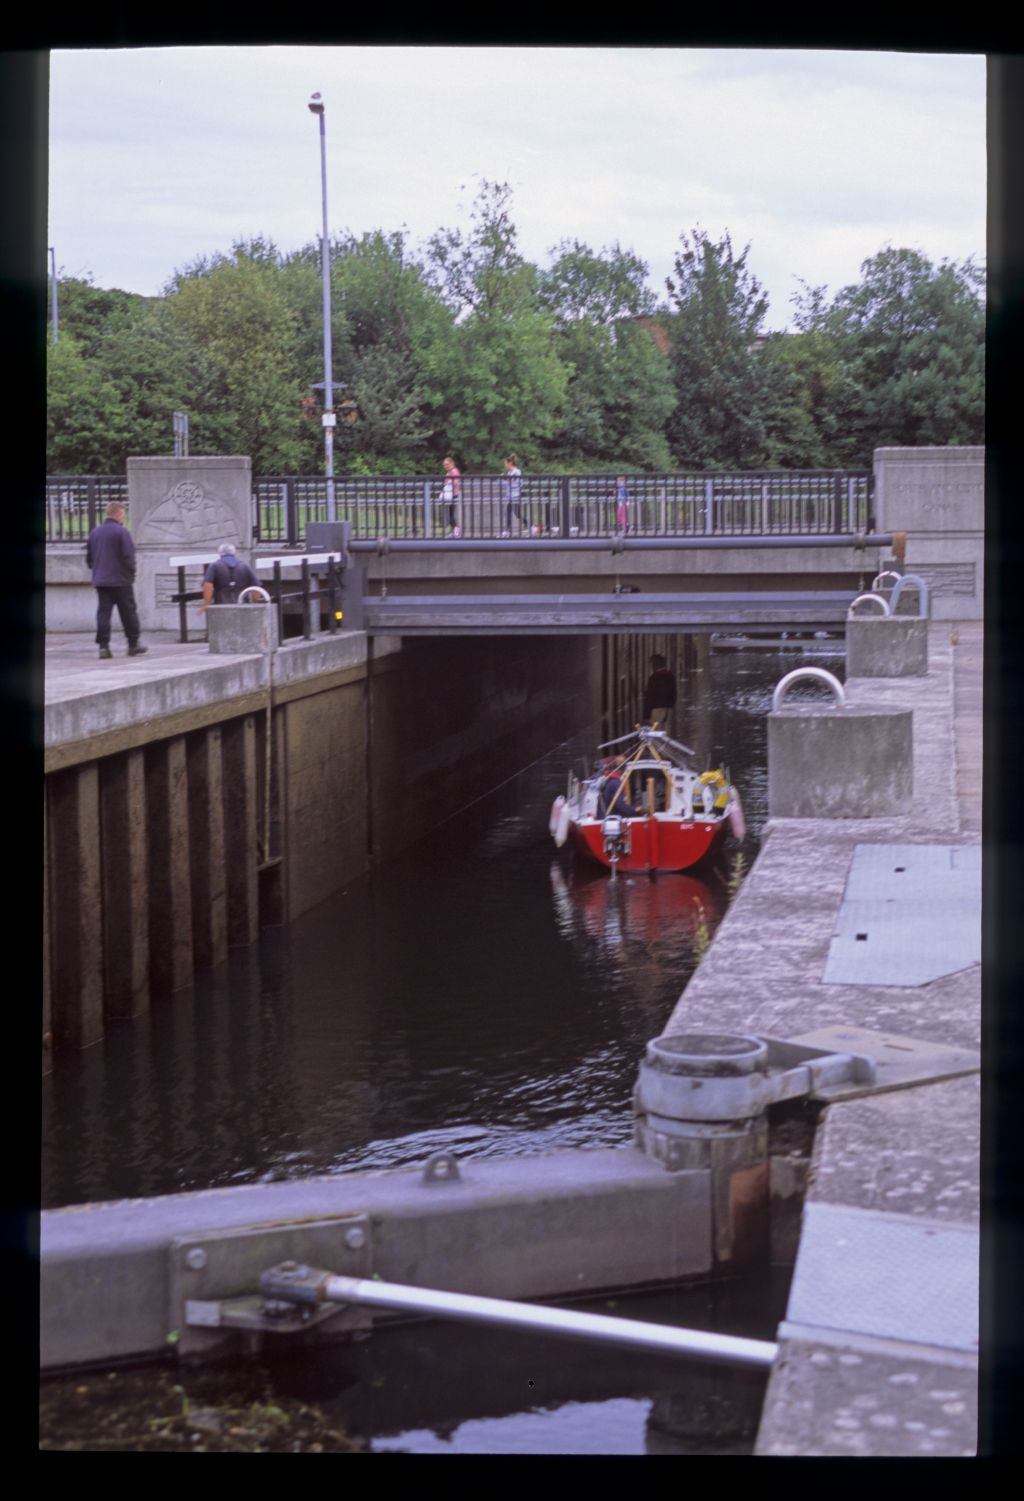 In the Dalmuir drop lock, sailing under a busy main road! Forth and Clyde Canal, Glasgow.